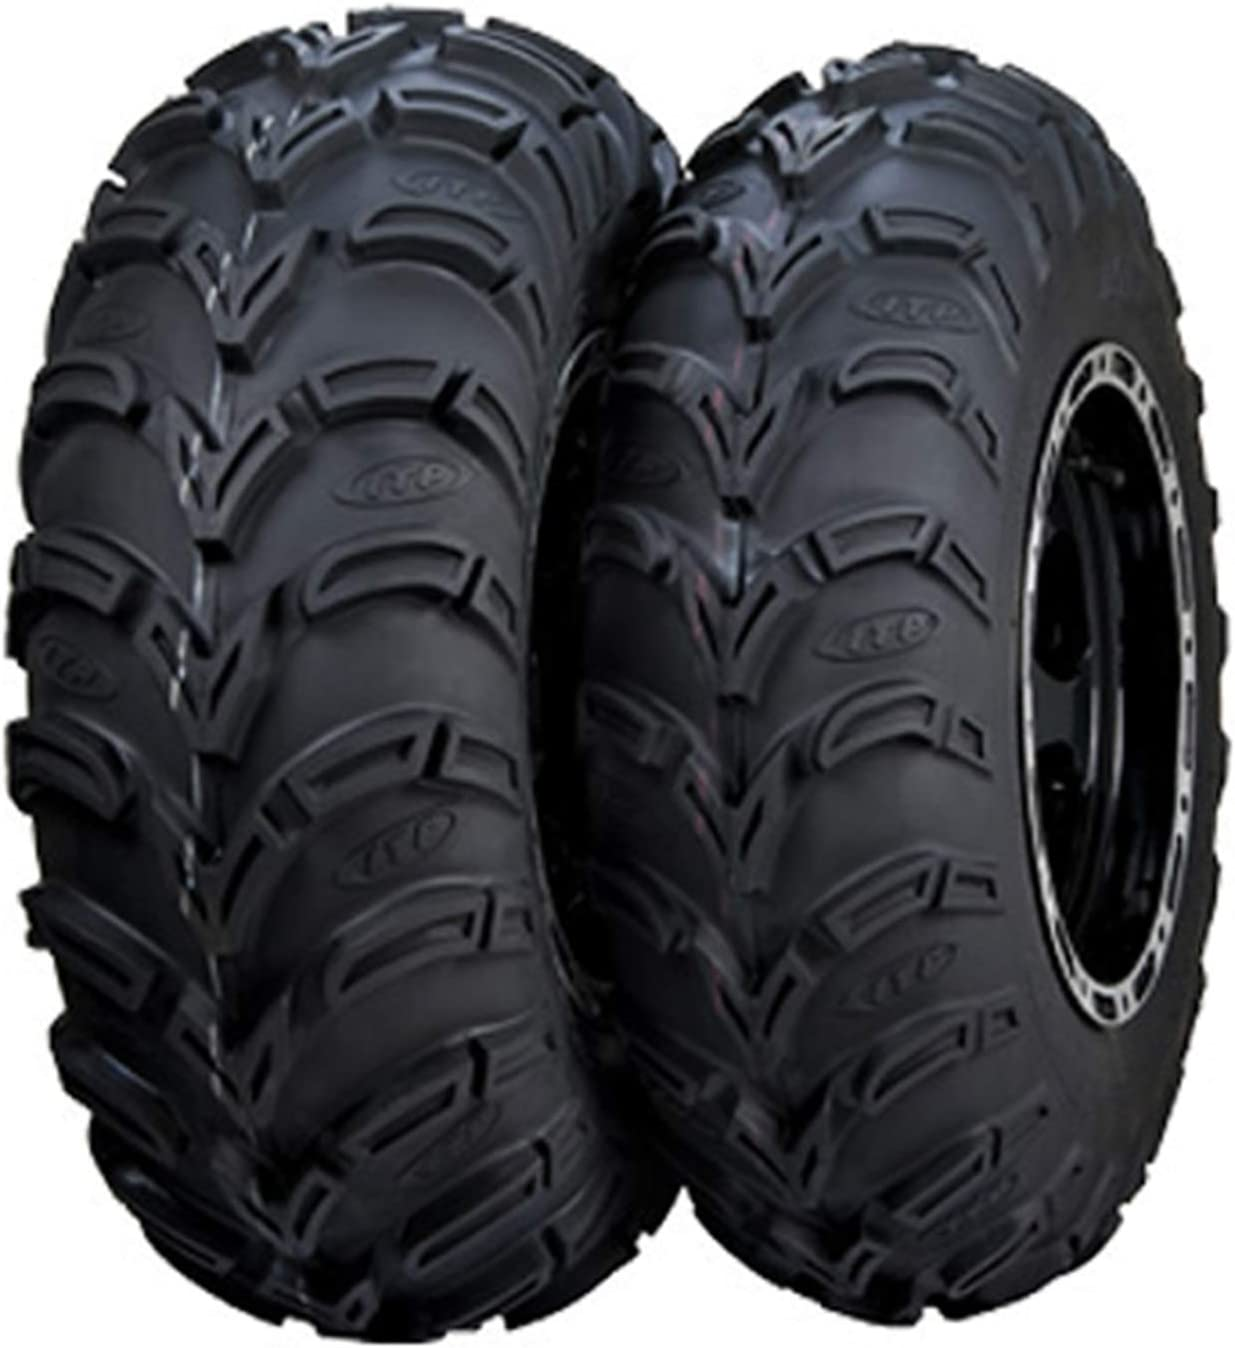 Ranking TOP10 Mud Lite AT Tire - Special price for a limited time 25x10x12 Fits 2008 Ranger 6x 800 Polaris MVRS